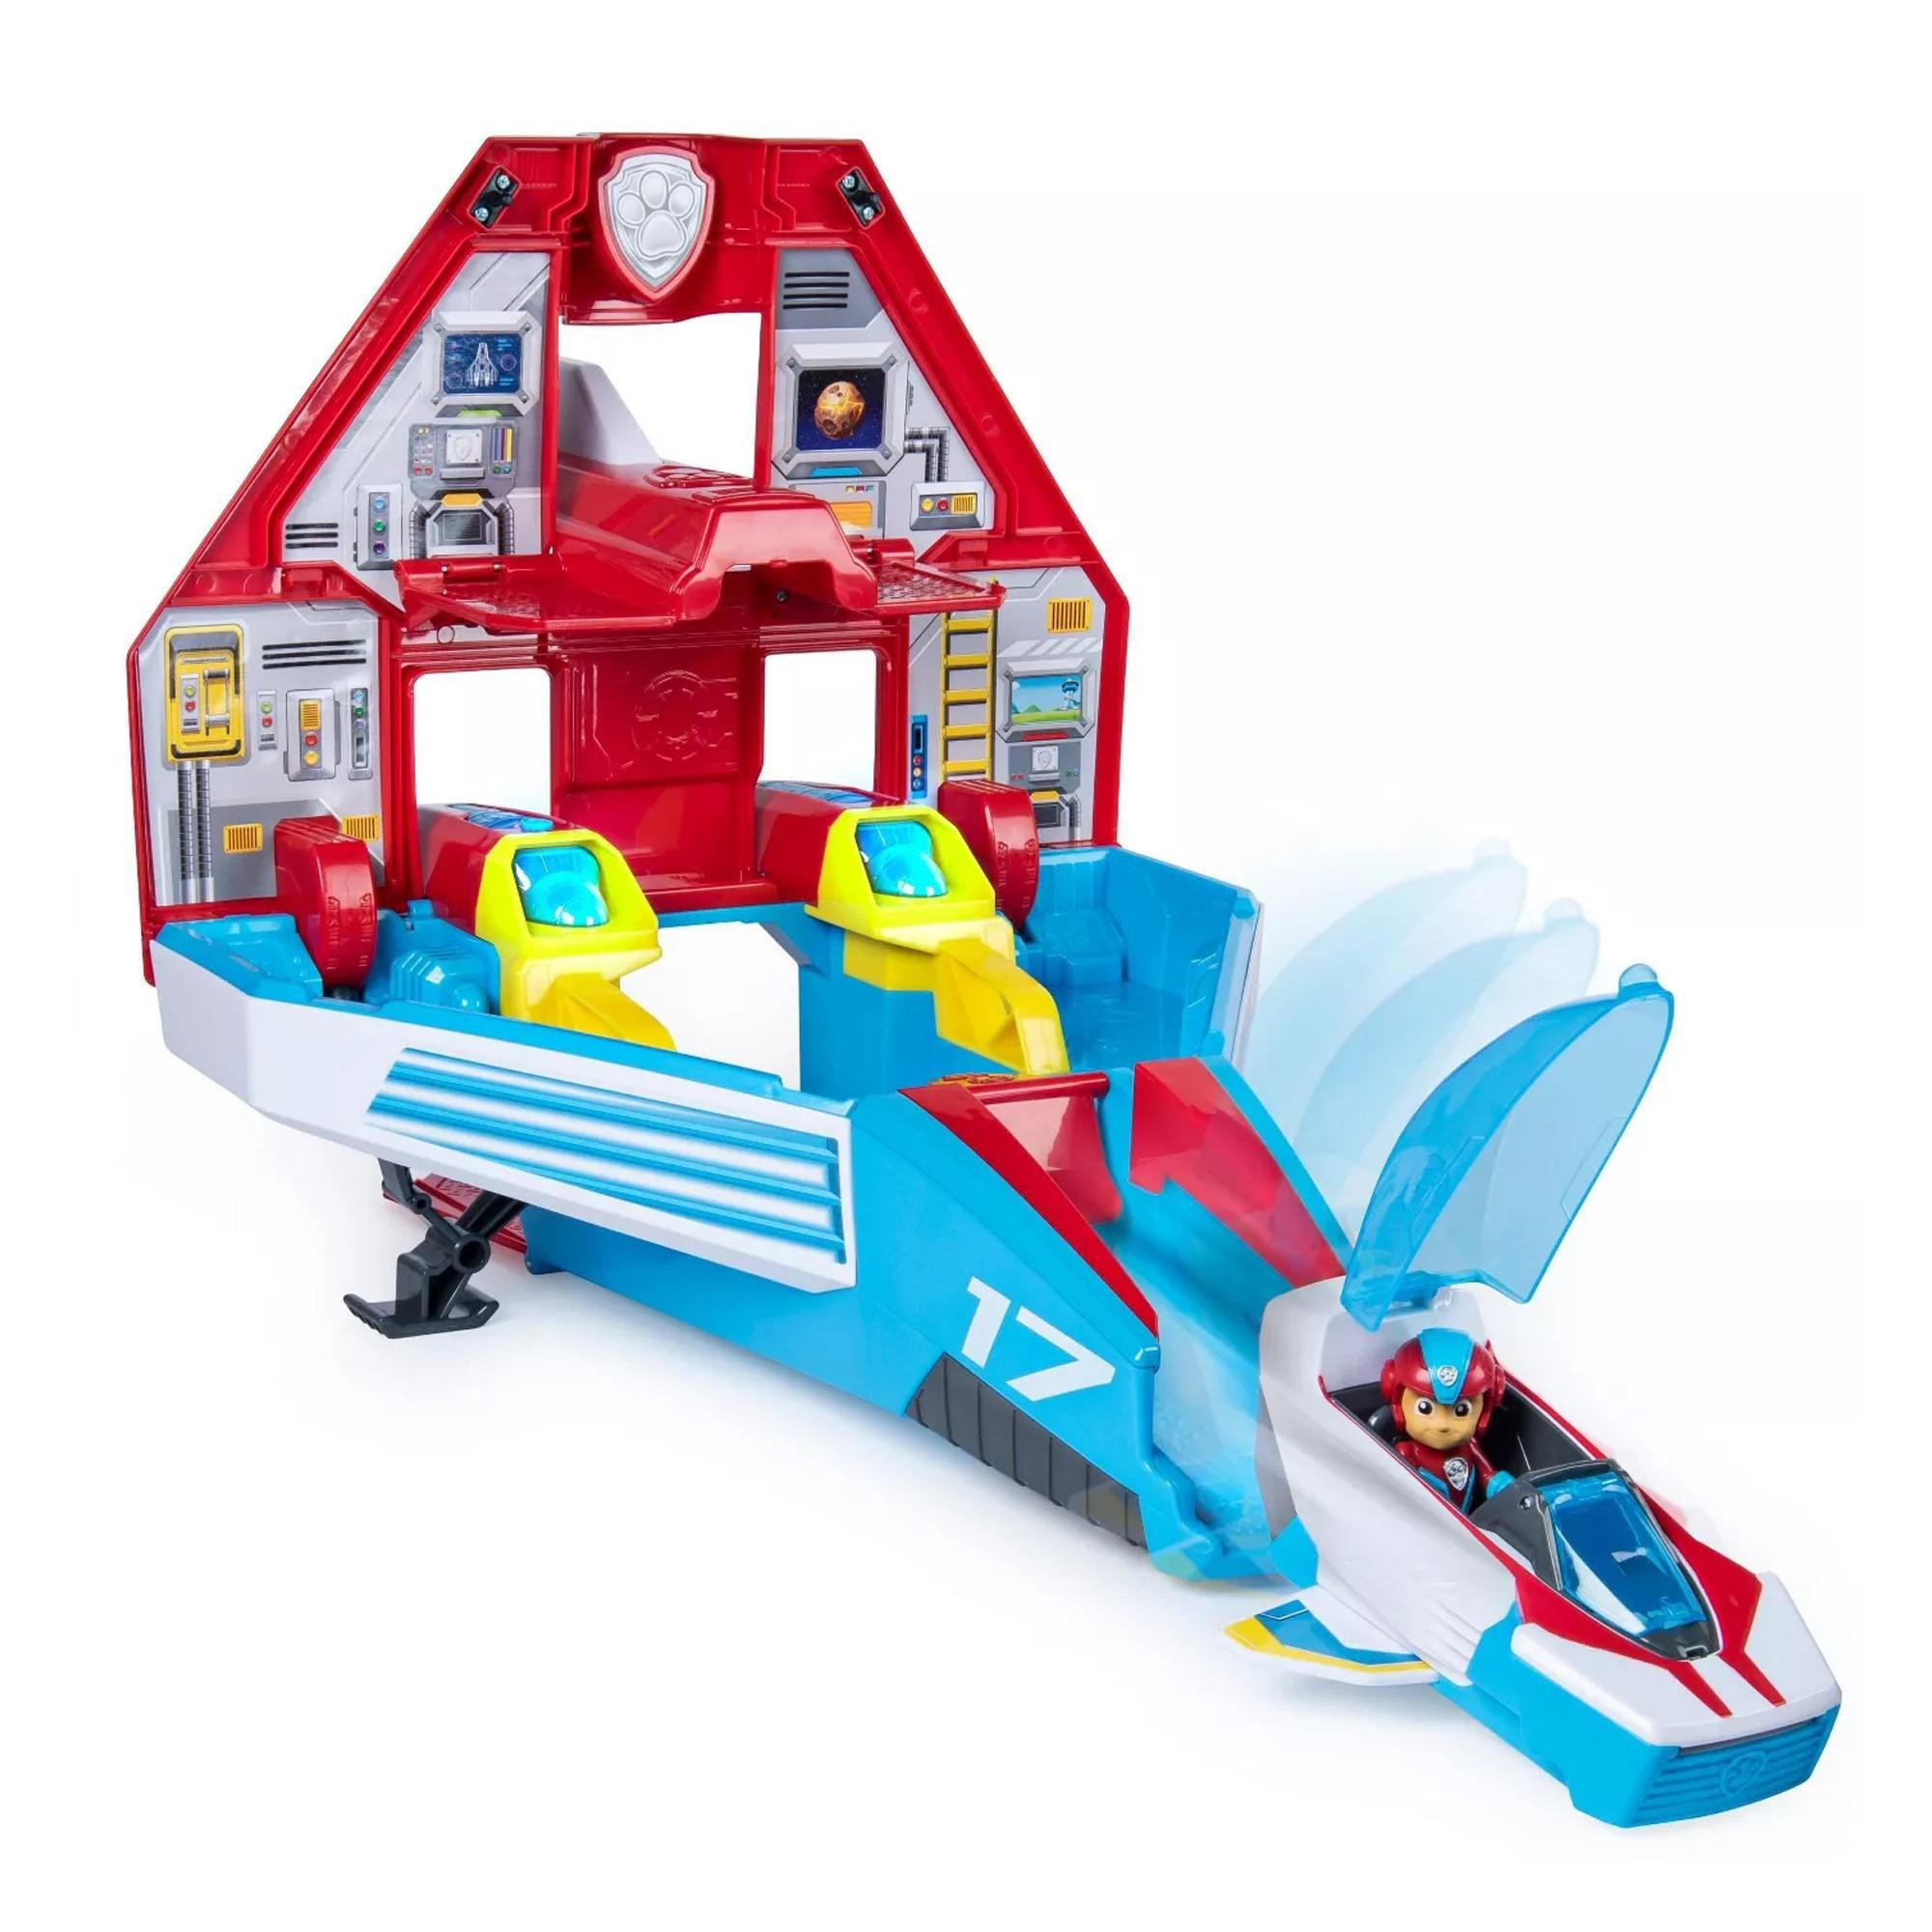 Paw Patrol Bedroom Furniture Lovely Spin Master Paw Patrol Super Mighty Pups Transforming Jet